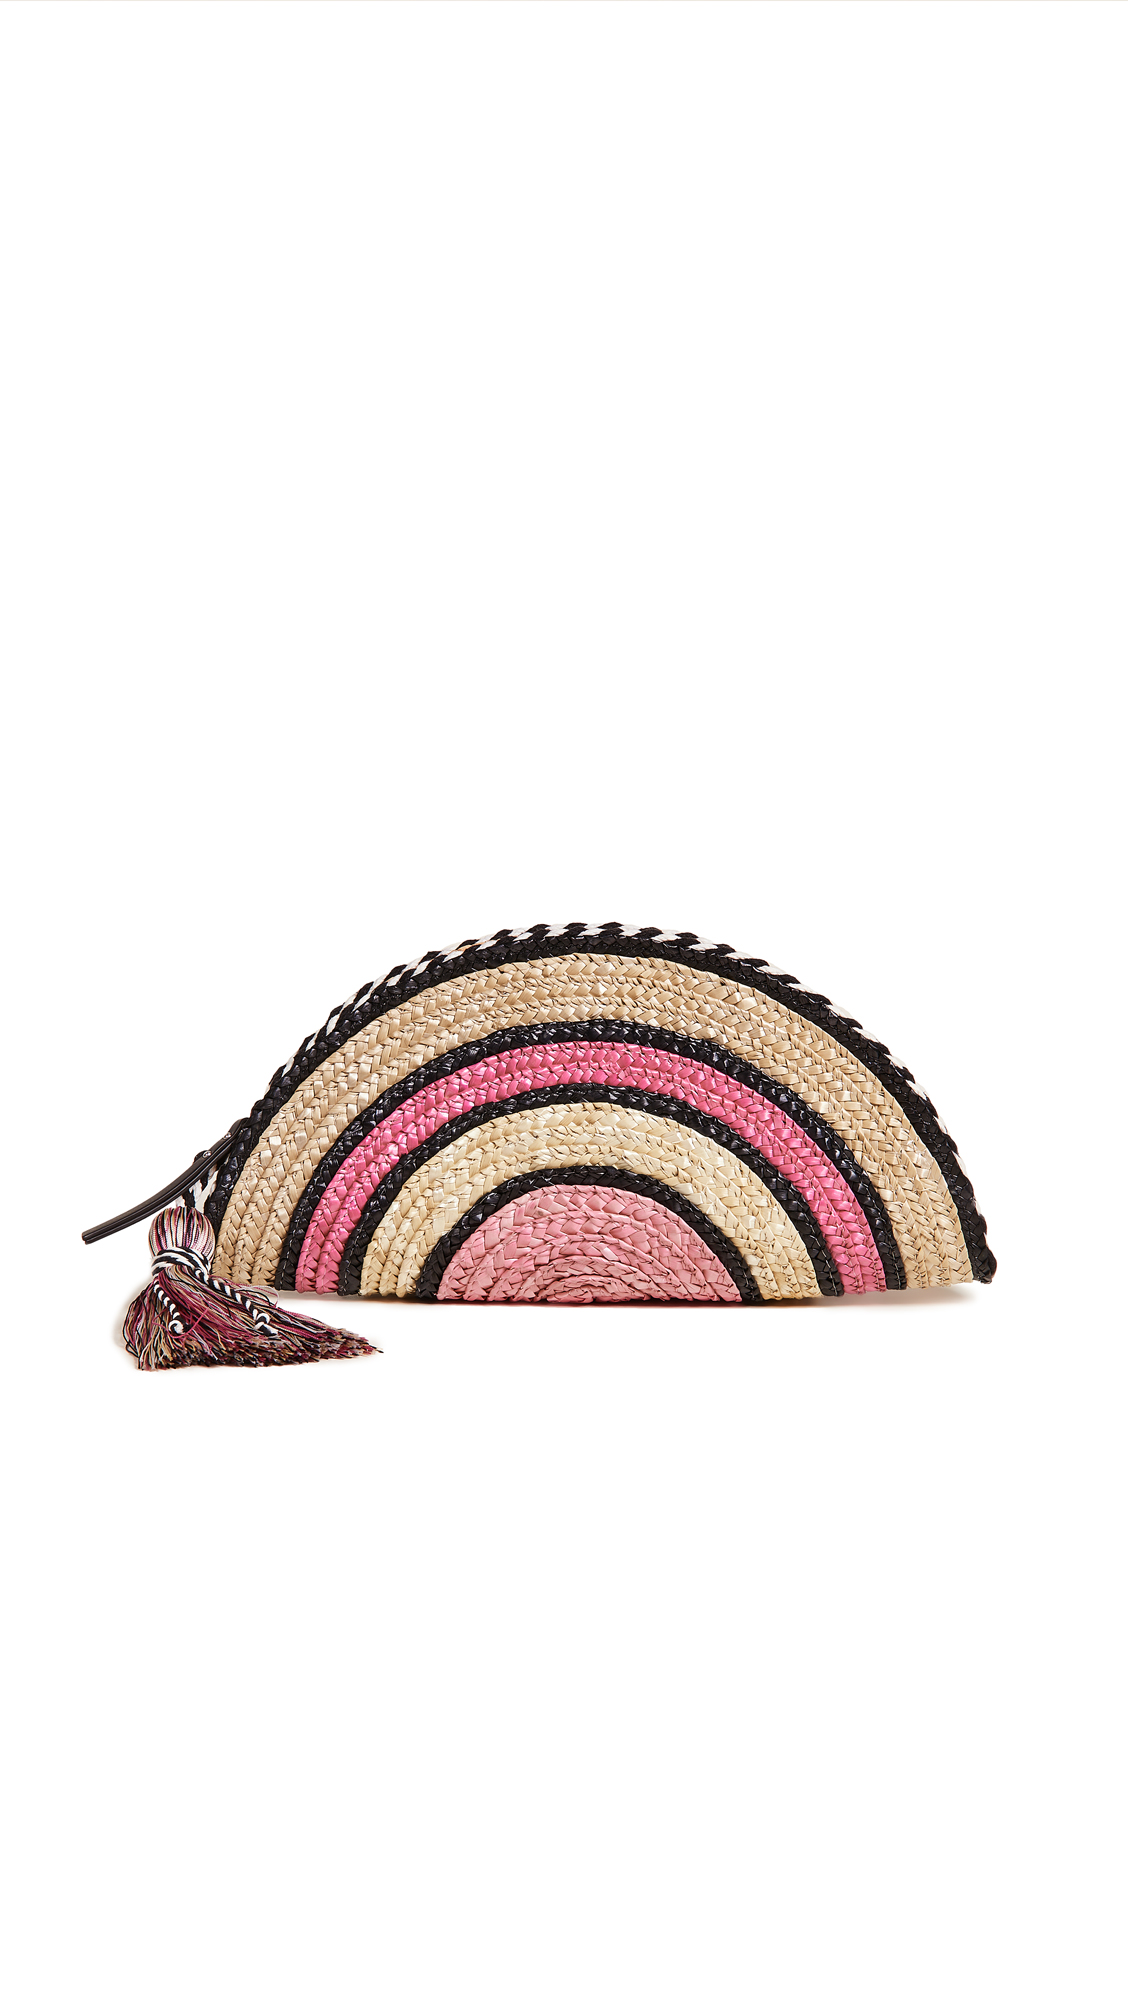 woven-bags-and-accessories-2018-clutch1